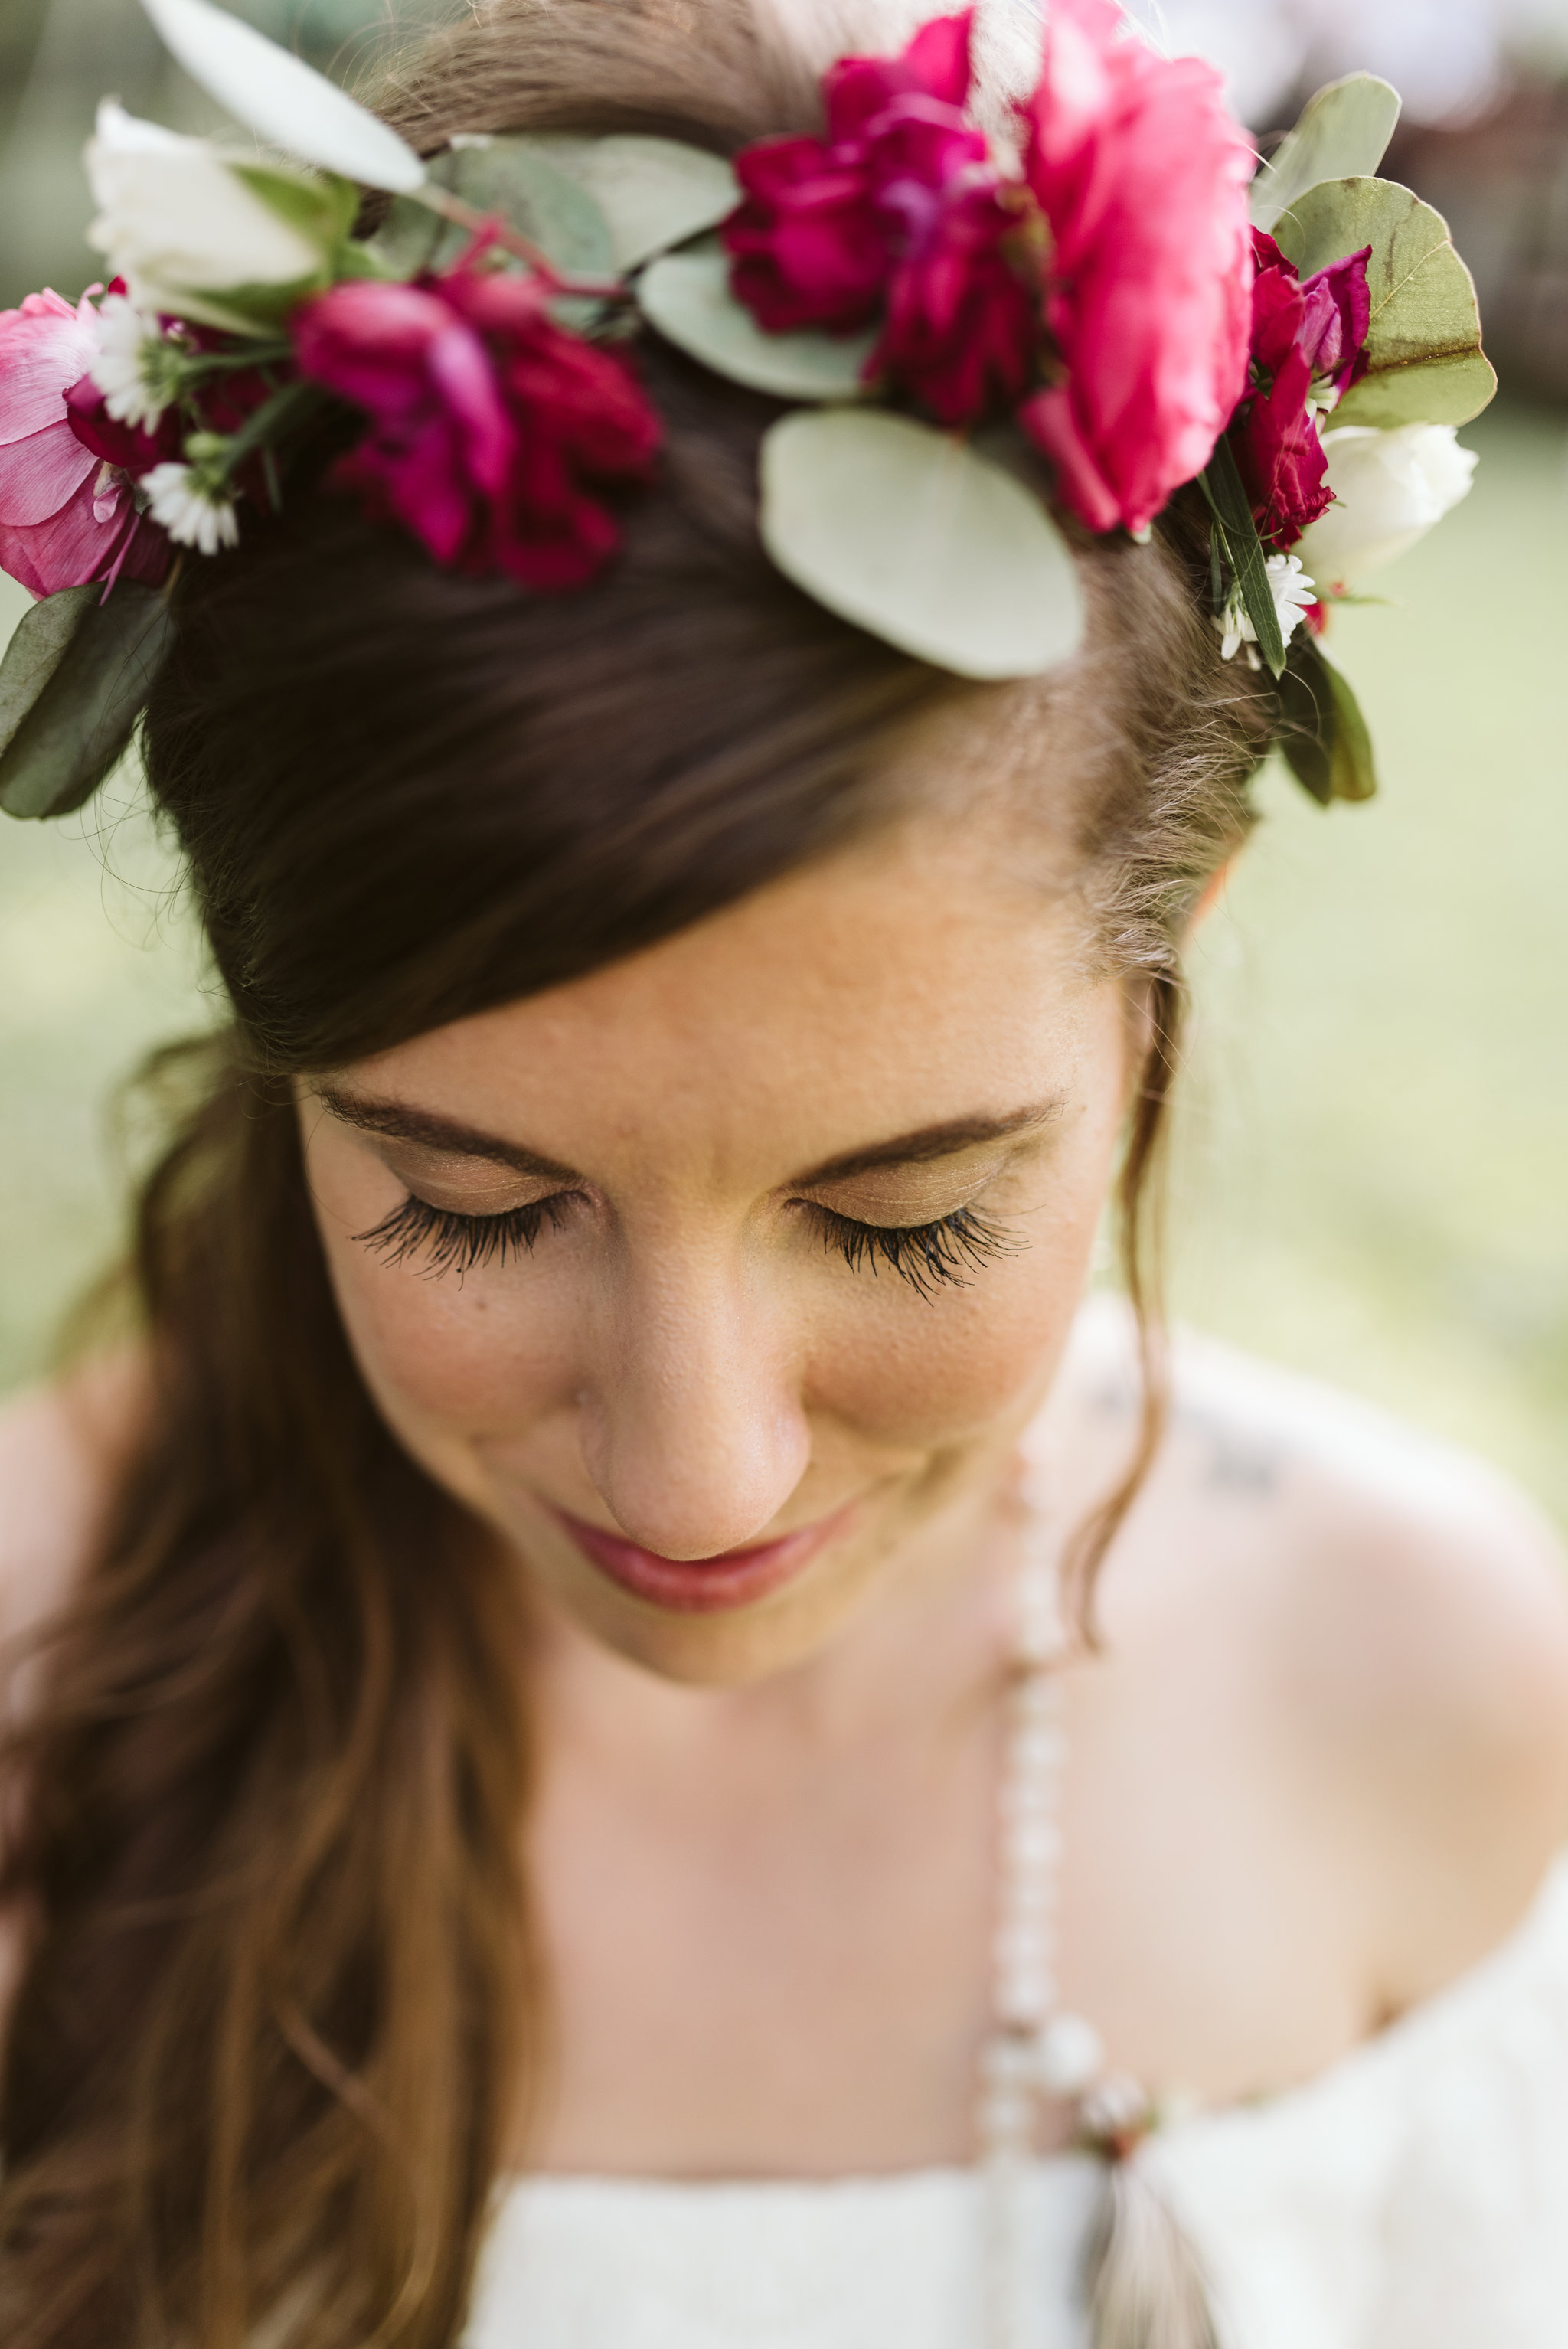 Annapolis, Quaker Wedding, Maryland Wedding Photographer, Intimate, Small Wedding, Vintage, DIY, Closeup of Bride, Flower Crown, Pink and White Flowers, Classic Bridal Makeup